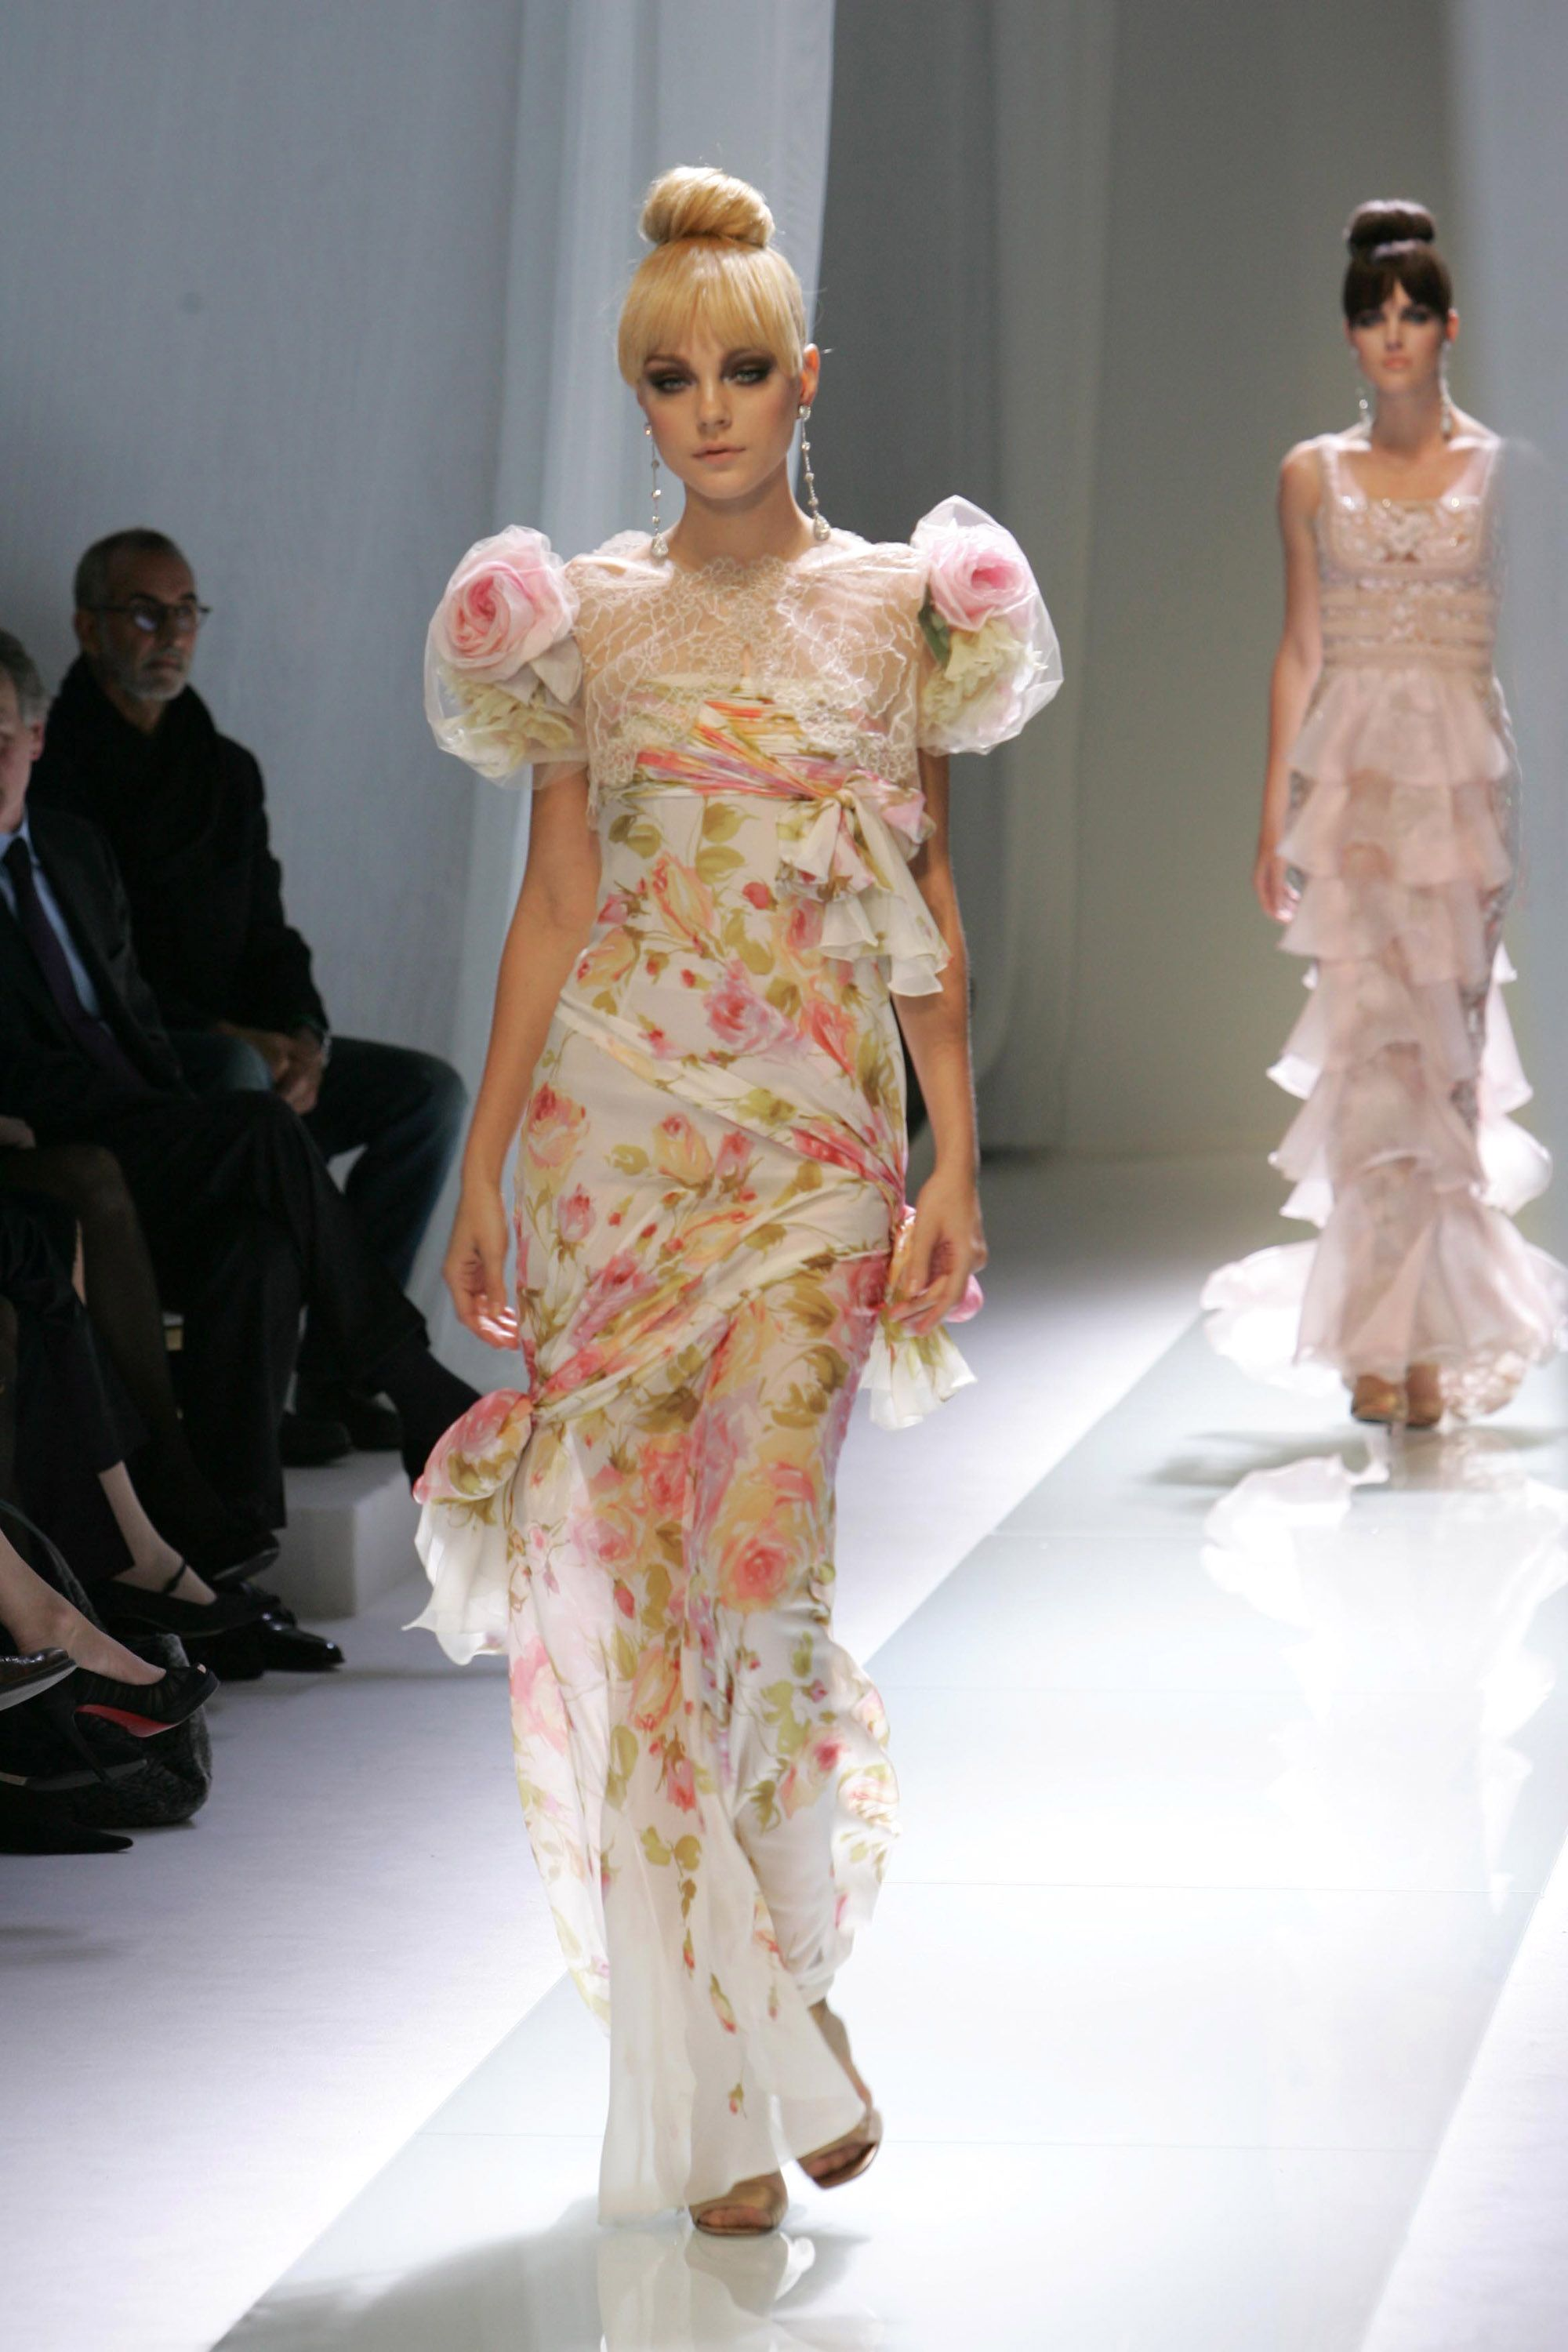 """Jessica Stam Landing in good company with Gemma Ward and Lily Donaldson, Jessica Stam was part of the new crop of models called """"doll face."""" The Canadian native was discovered at a Tim Hortons and later won the Los Angeles Model Look contest in 2002."""